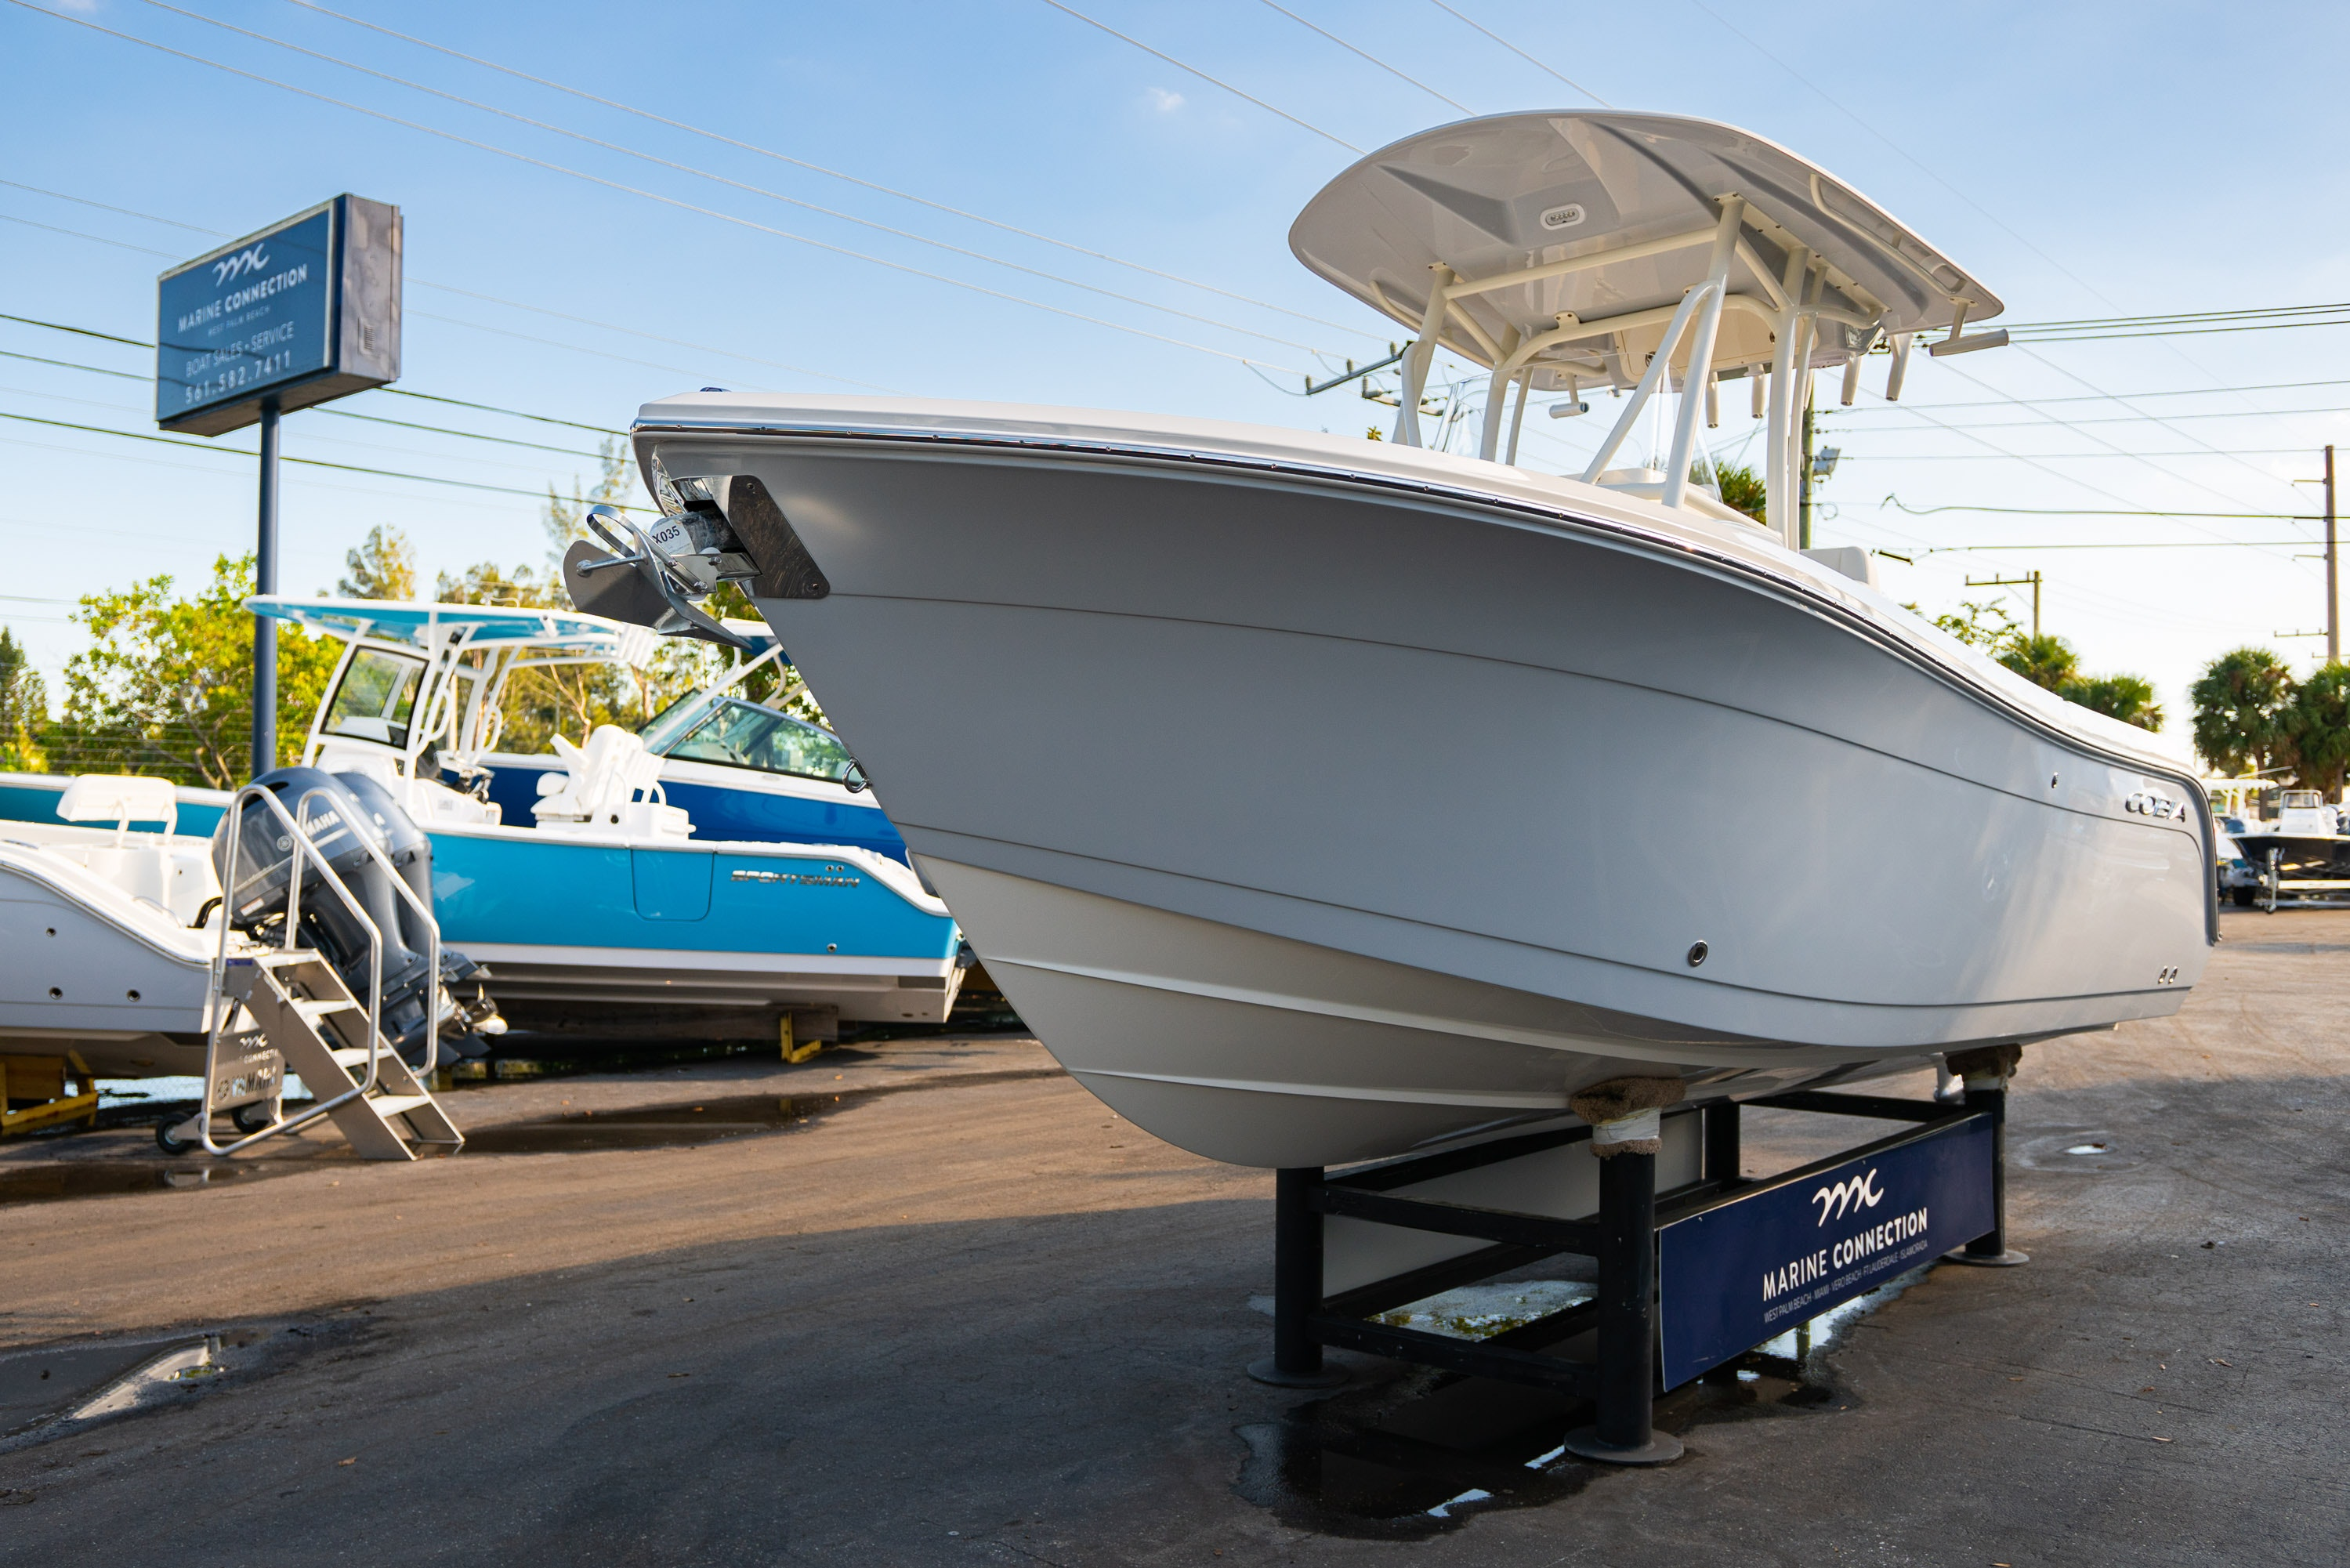 Thumbnail 3 for New 2020 Cobia 220 CC boat for sale in West Palm Beach, FL